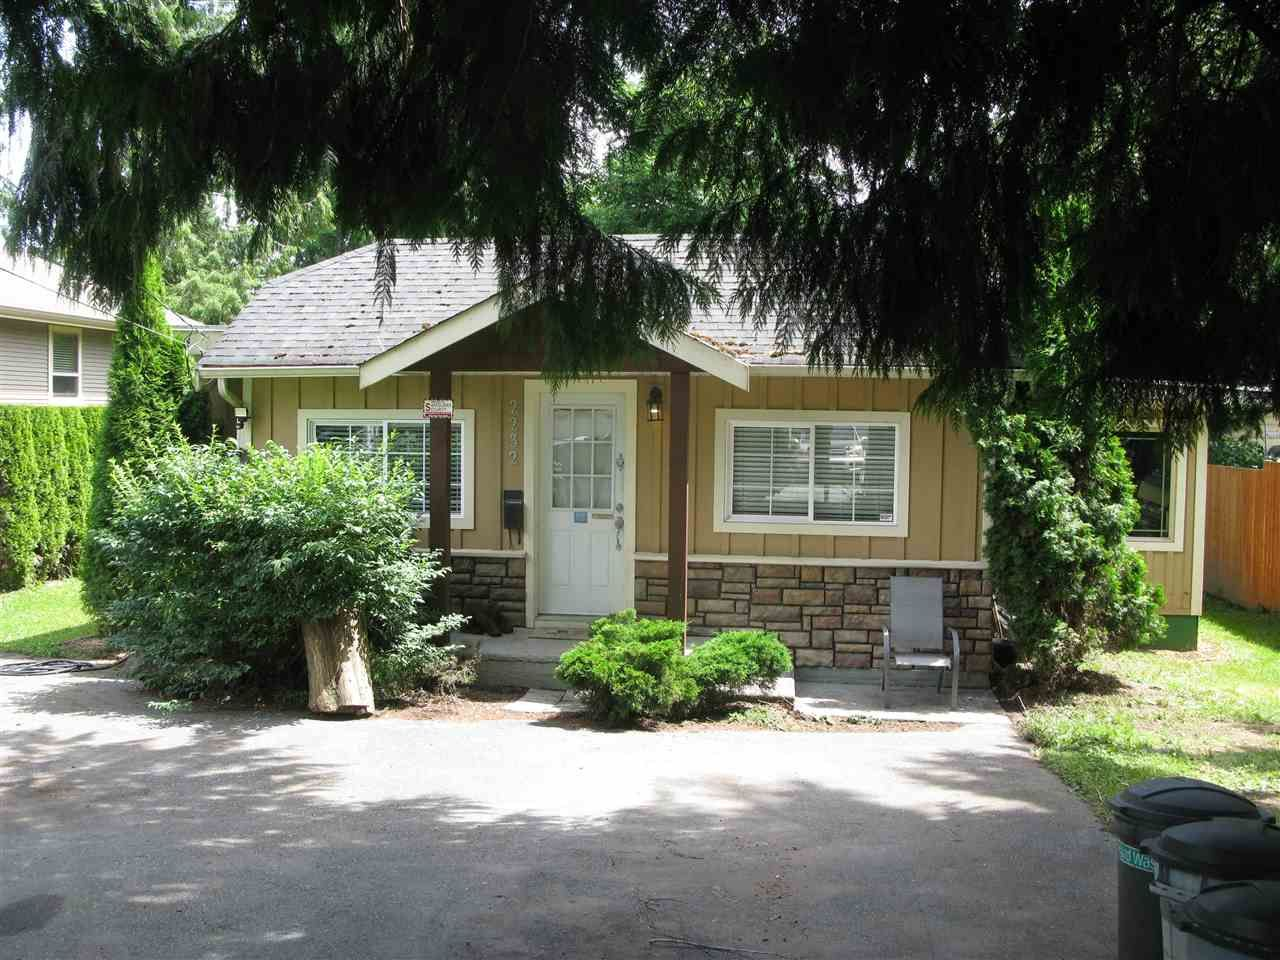 """Main Photo: 2232 MOULDSTADE Road in Abbotsford: Central Abbotsford House for sale in """"MOULDSTADE LANE"""" : MLS®# R2285177"""